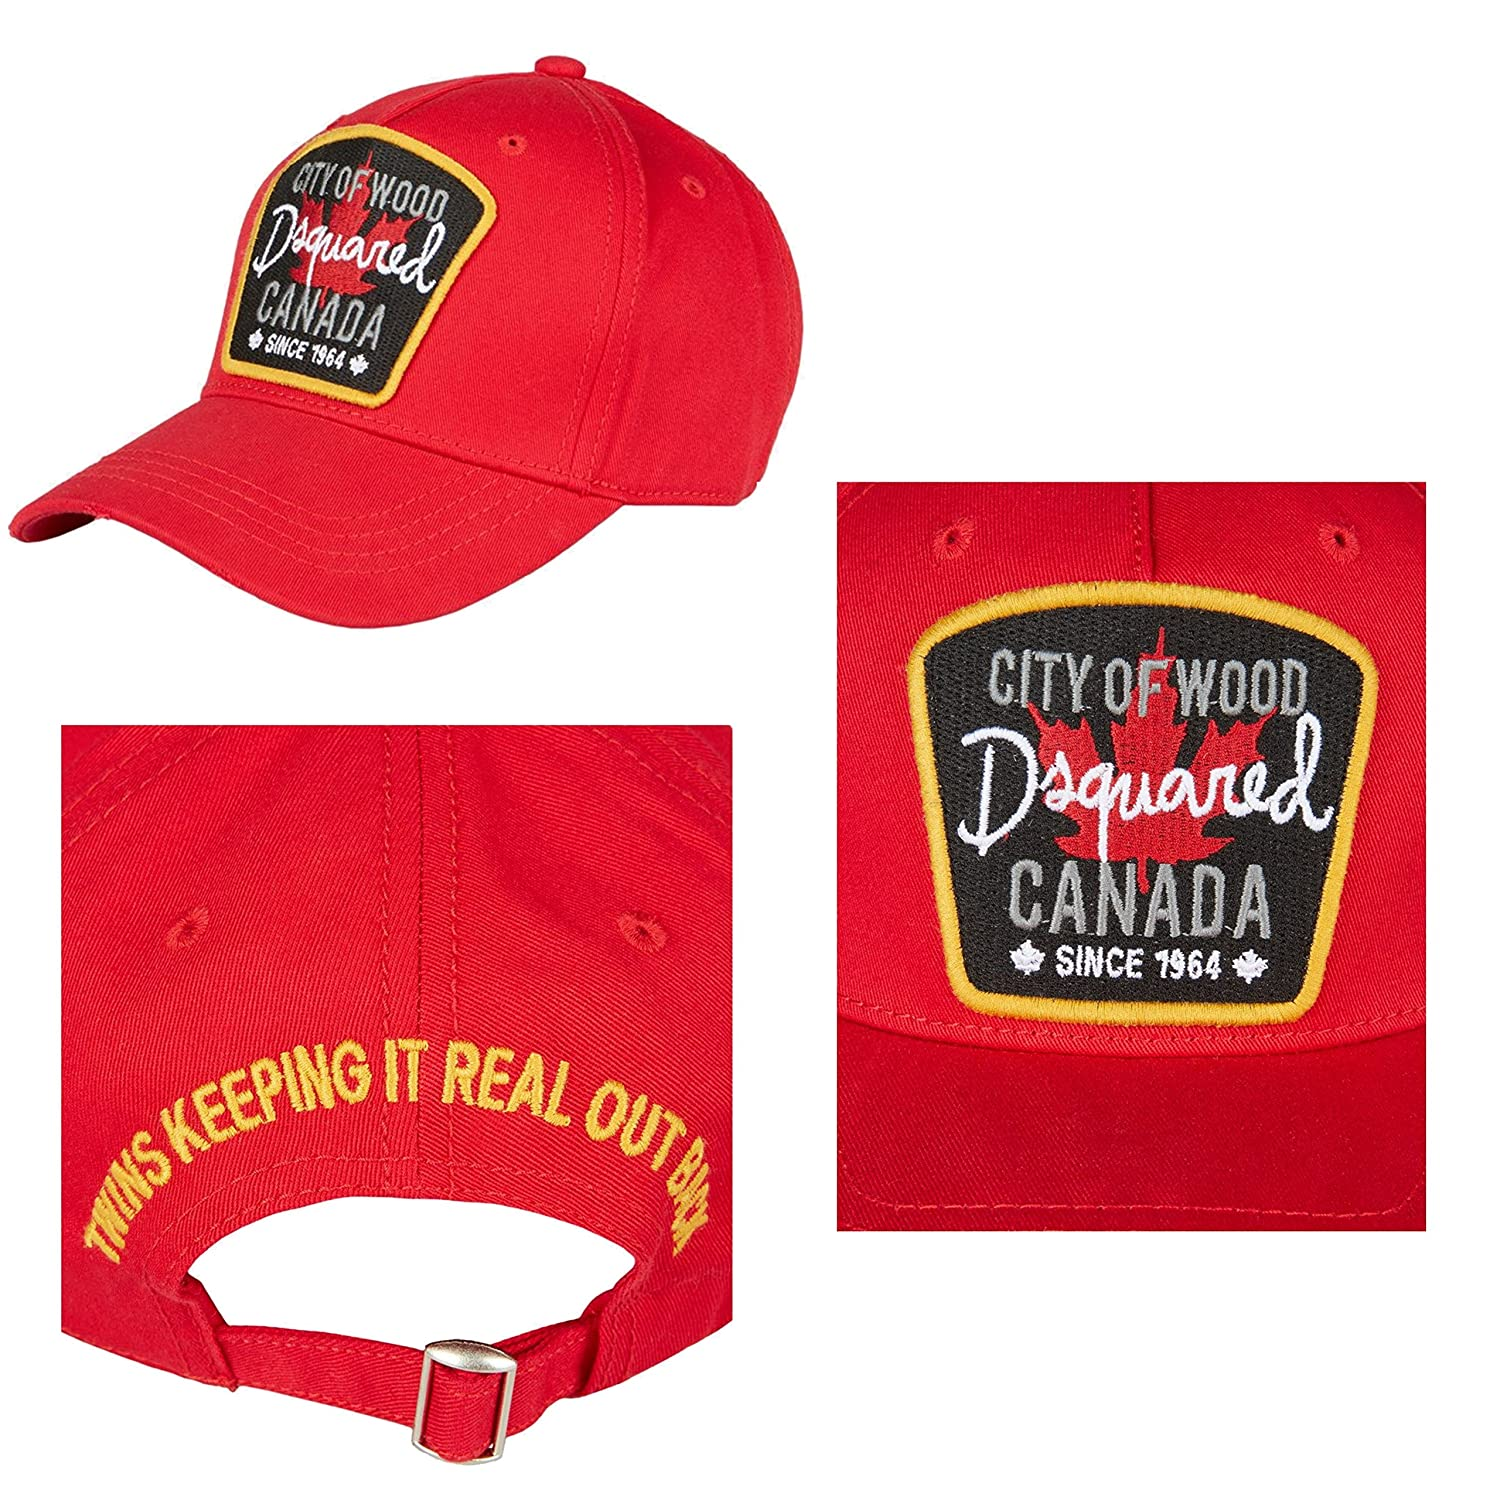 6ae38cdd2d1175 DSquared Baseball Cap Rosso Cit of Wood Canada **B-Quality** Factory Seconds,  Rejects or Mill Graded Irregulars*: Amazon.co.uk: Sports & Outdoors